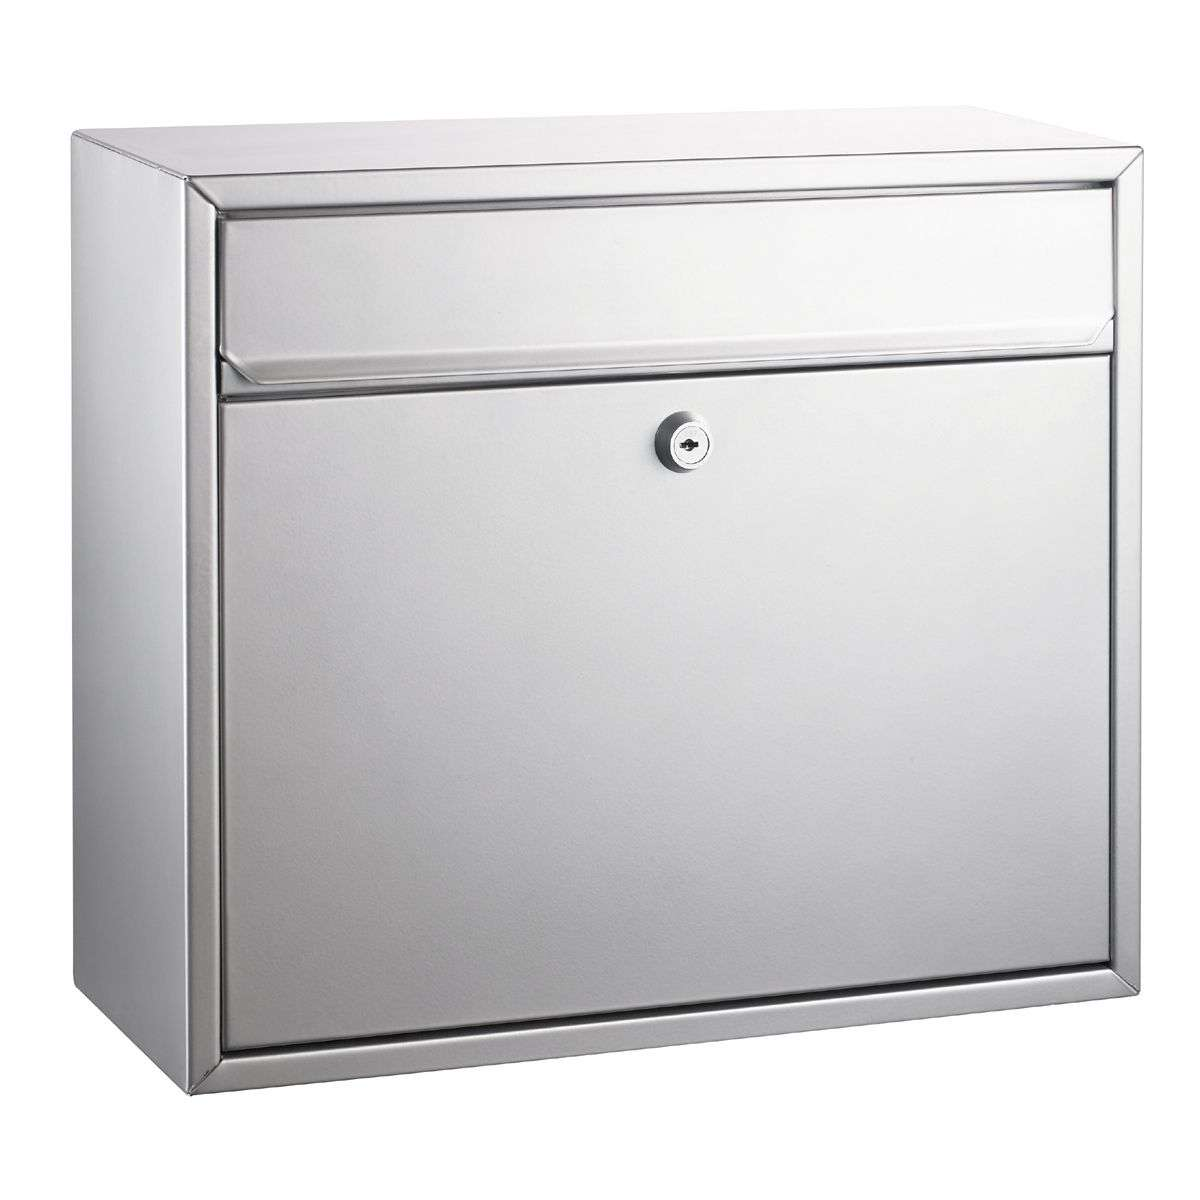 Letterbox mount silver painted-1003093-31